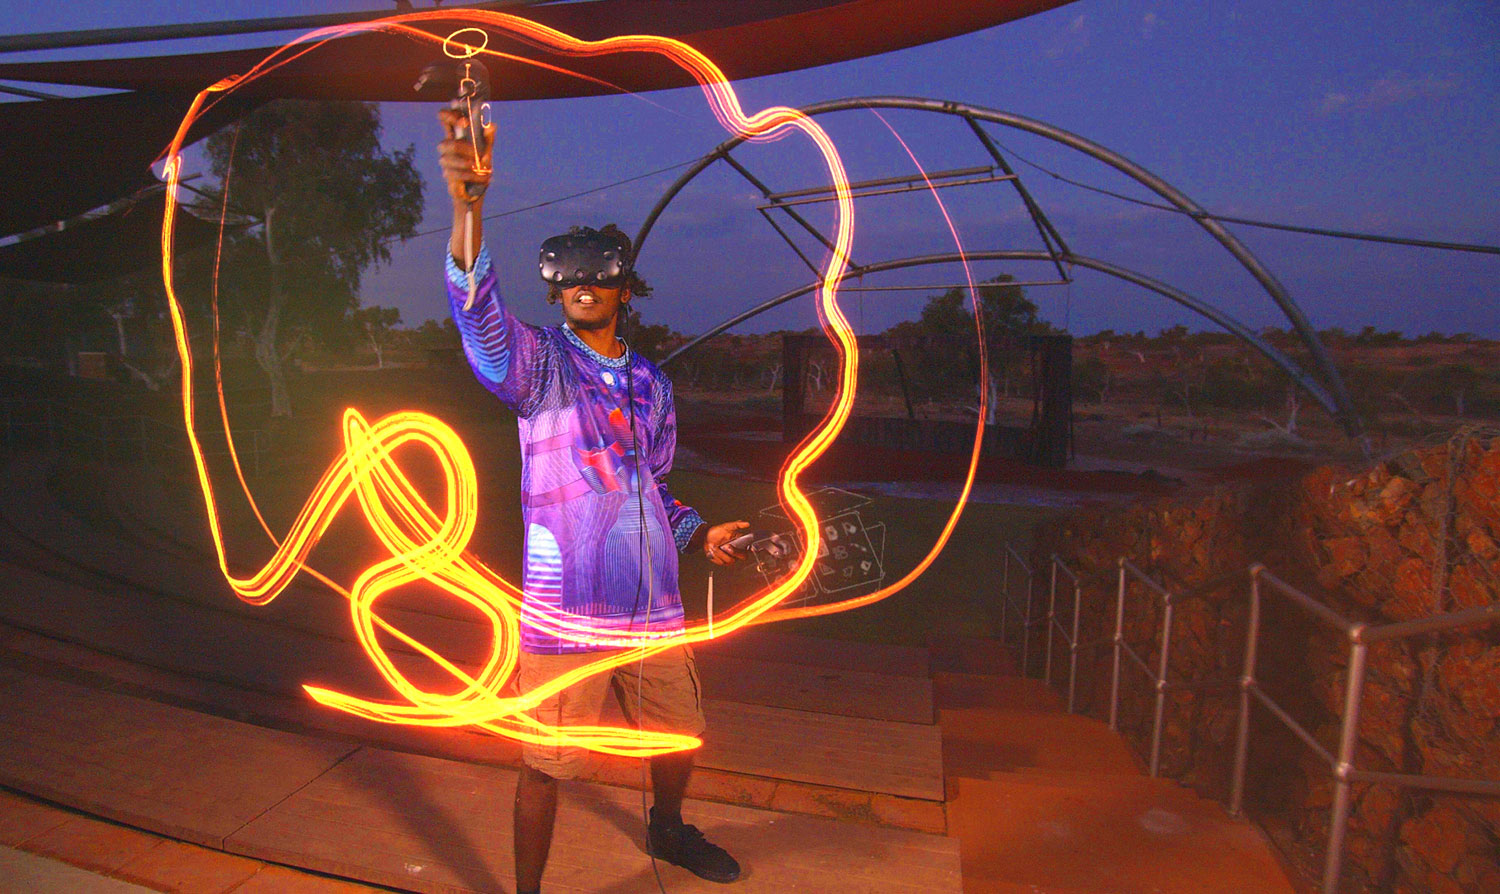 FD_Nelson_Coppin_MixedReality_VR_Painting.jpg